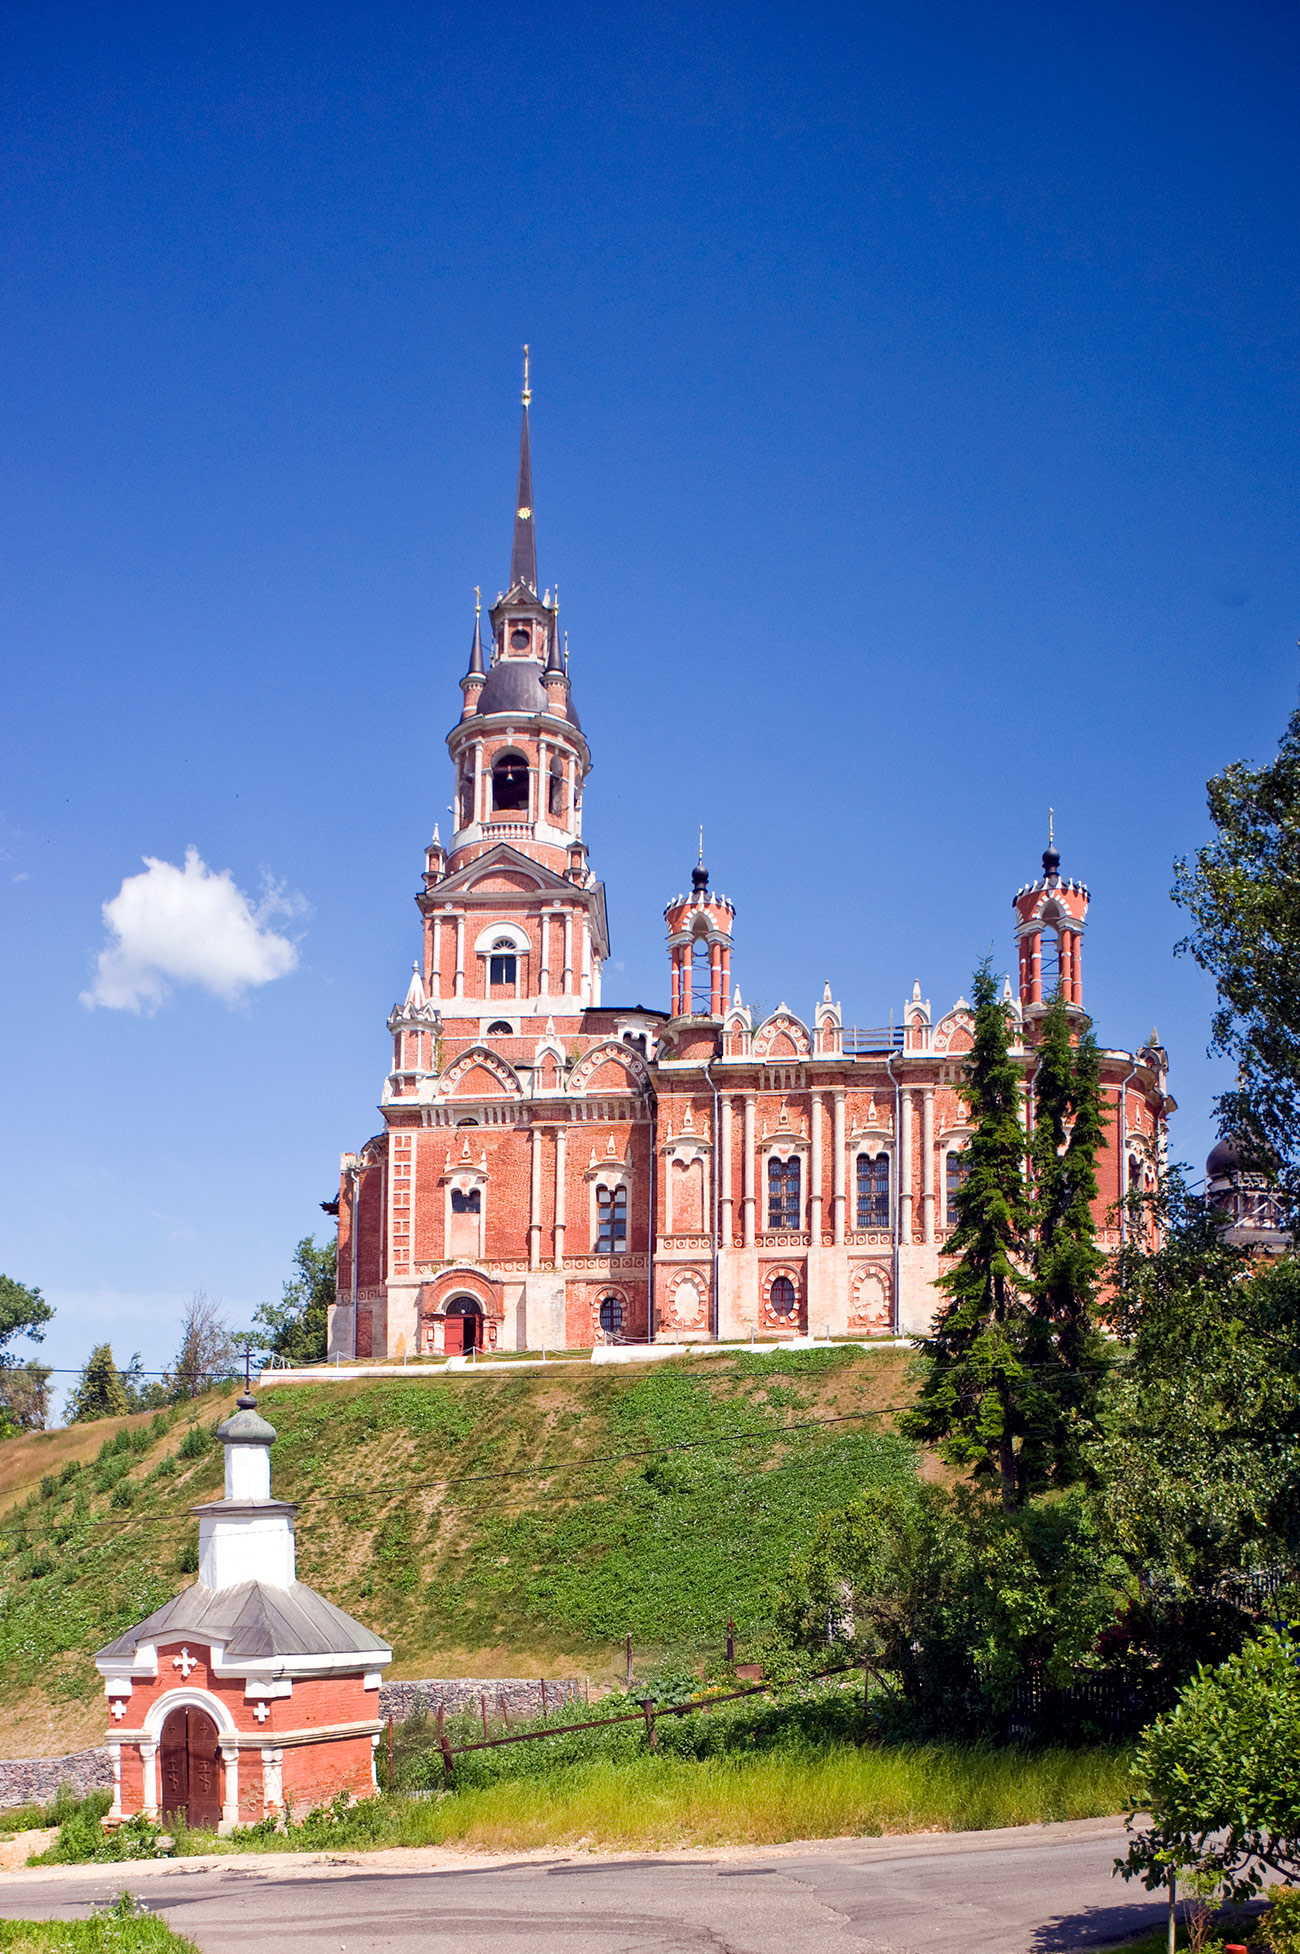 Cathedral of St. Nicholas. South view with Kremlin Chapel (built 1912). July 5, 2015. / Photo: William Brumfield